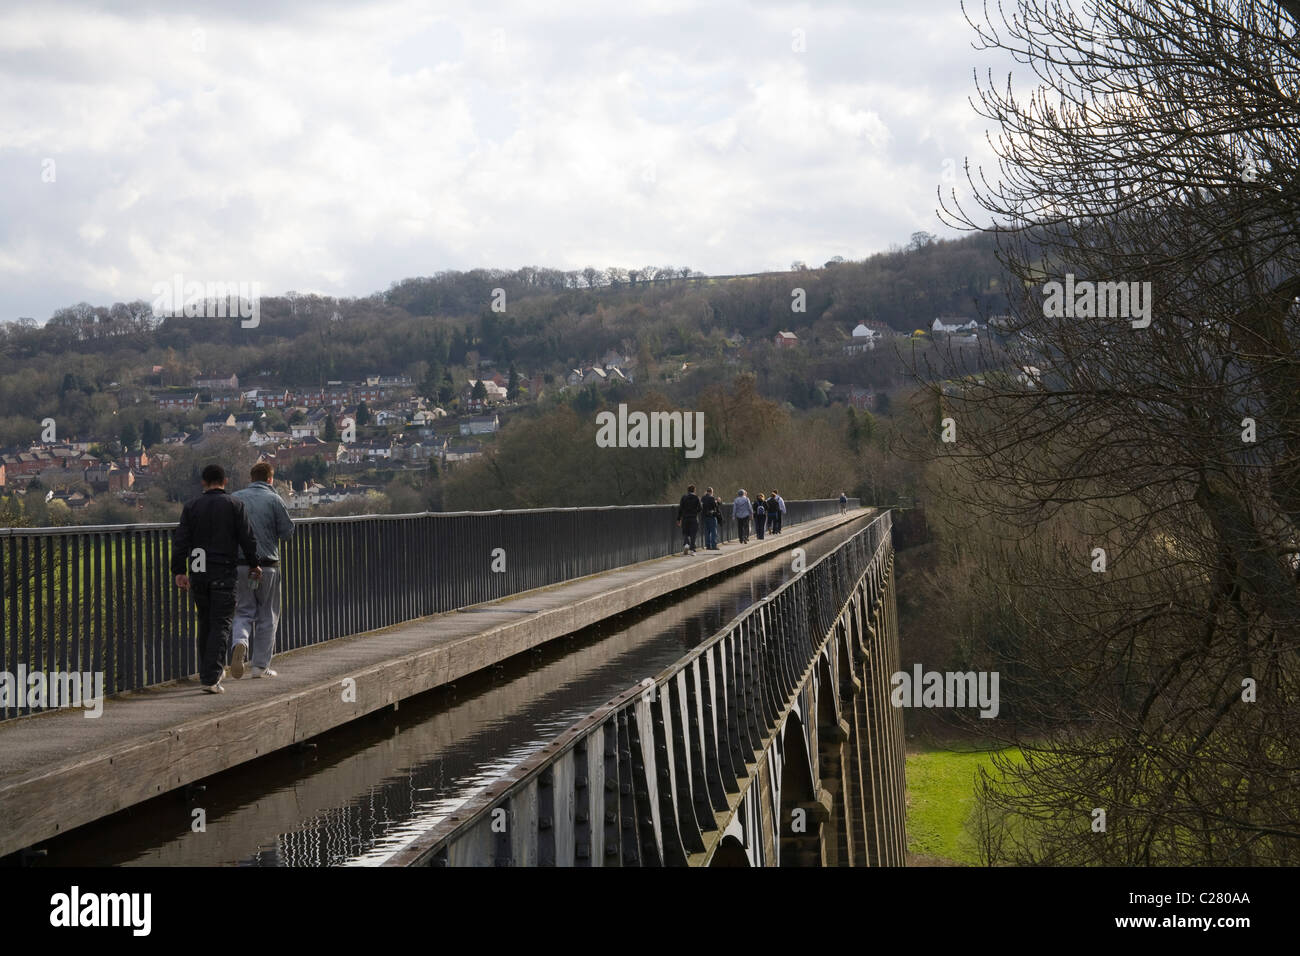 North Wales UK Walkers on towpath along trough of Pontcysyllte Aqueduct built by Thomas Telford carries Shropshire - Stock Image